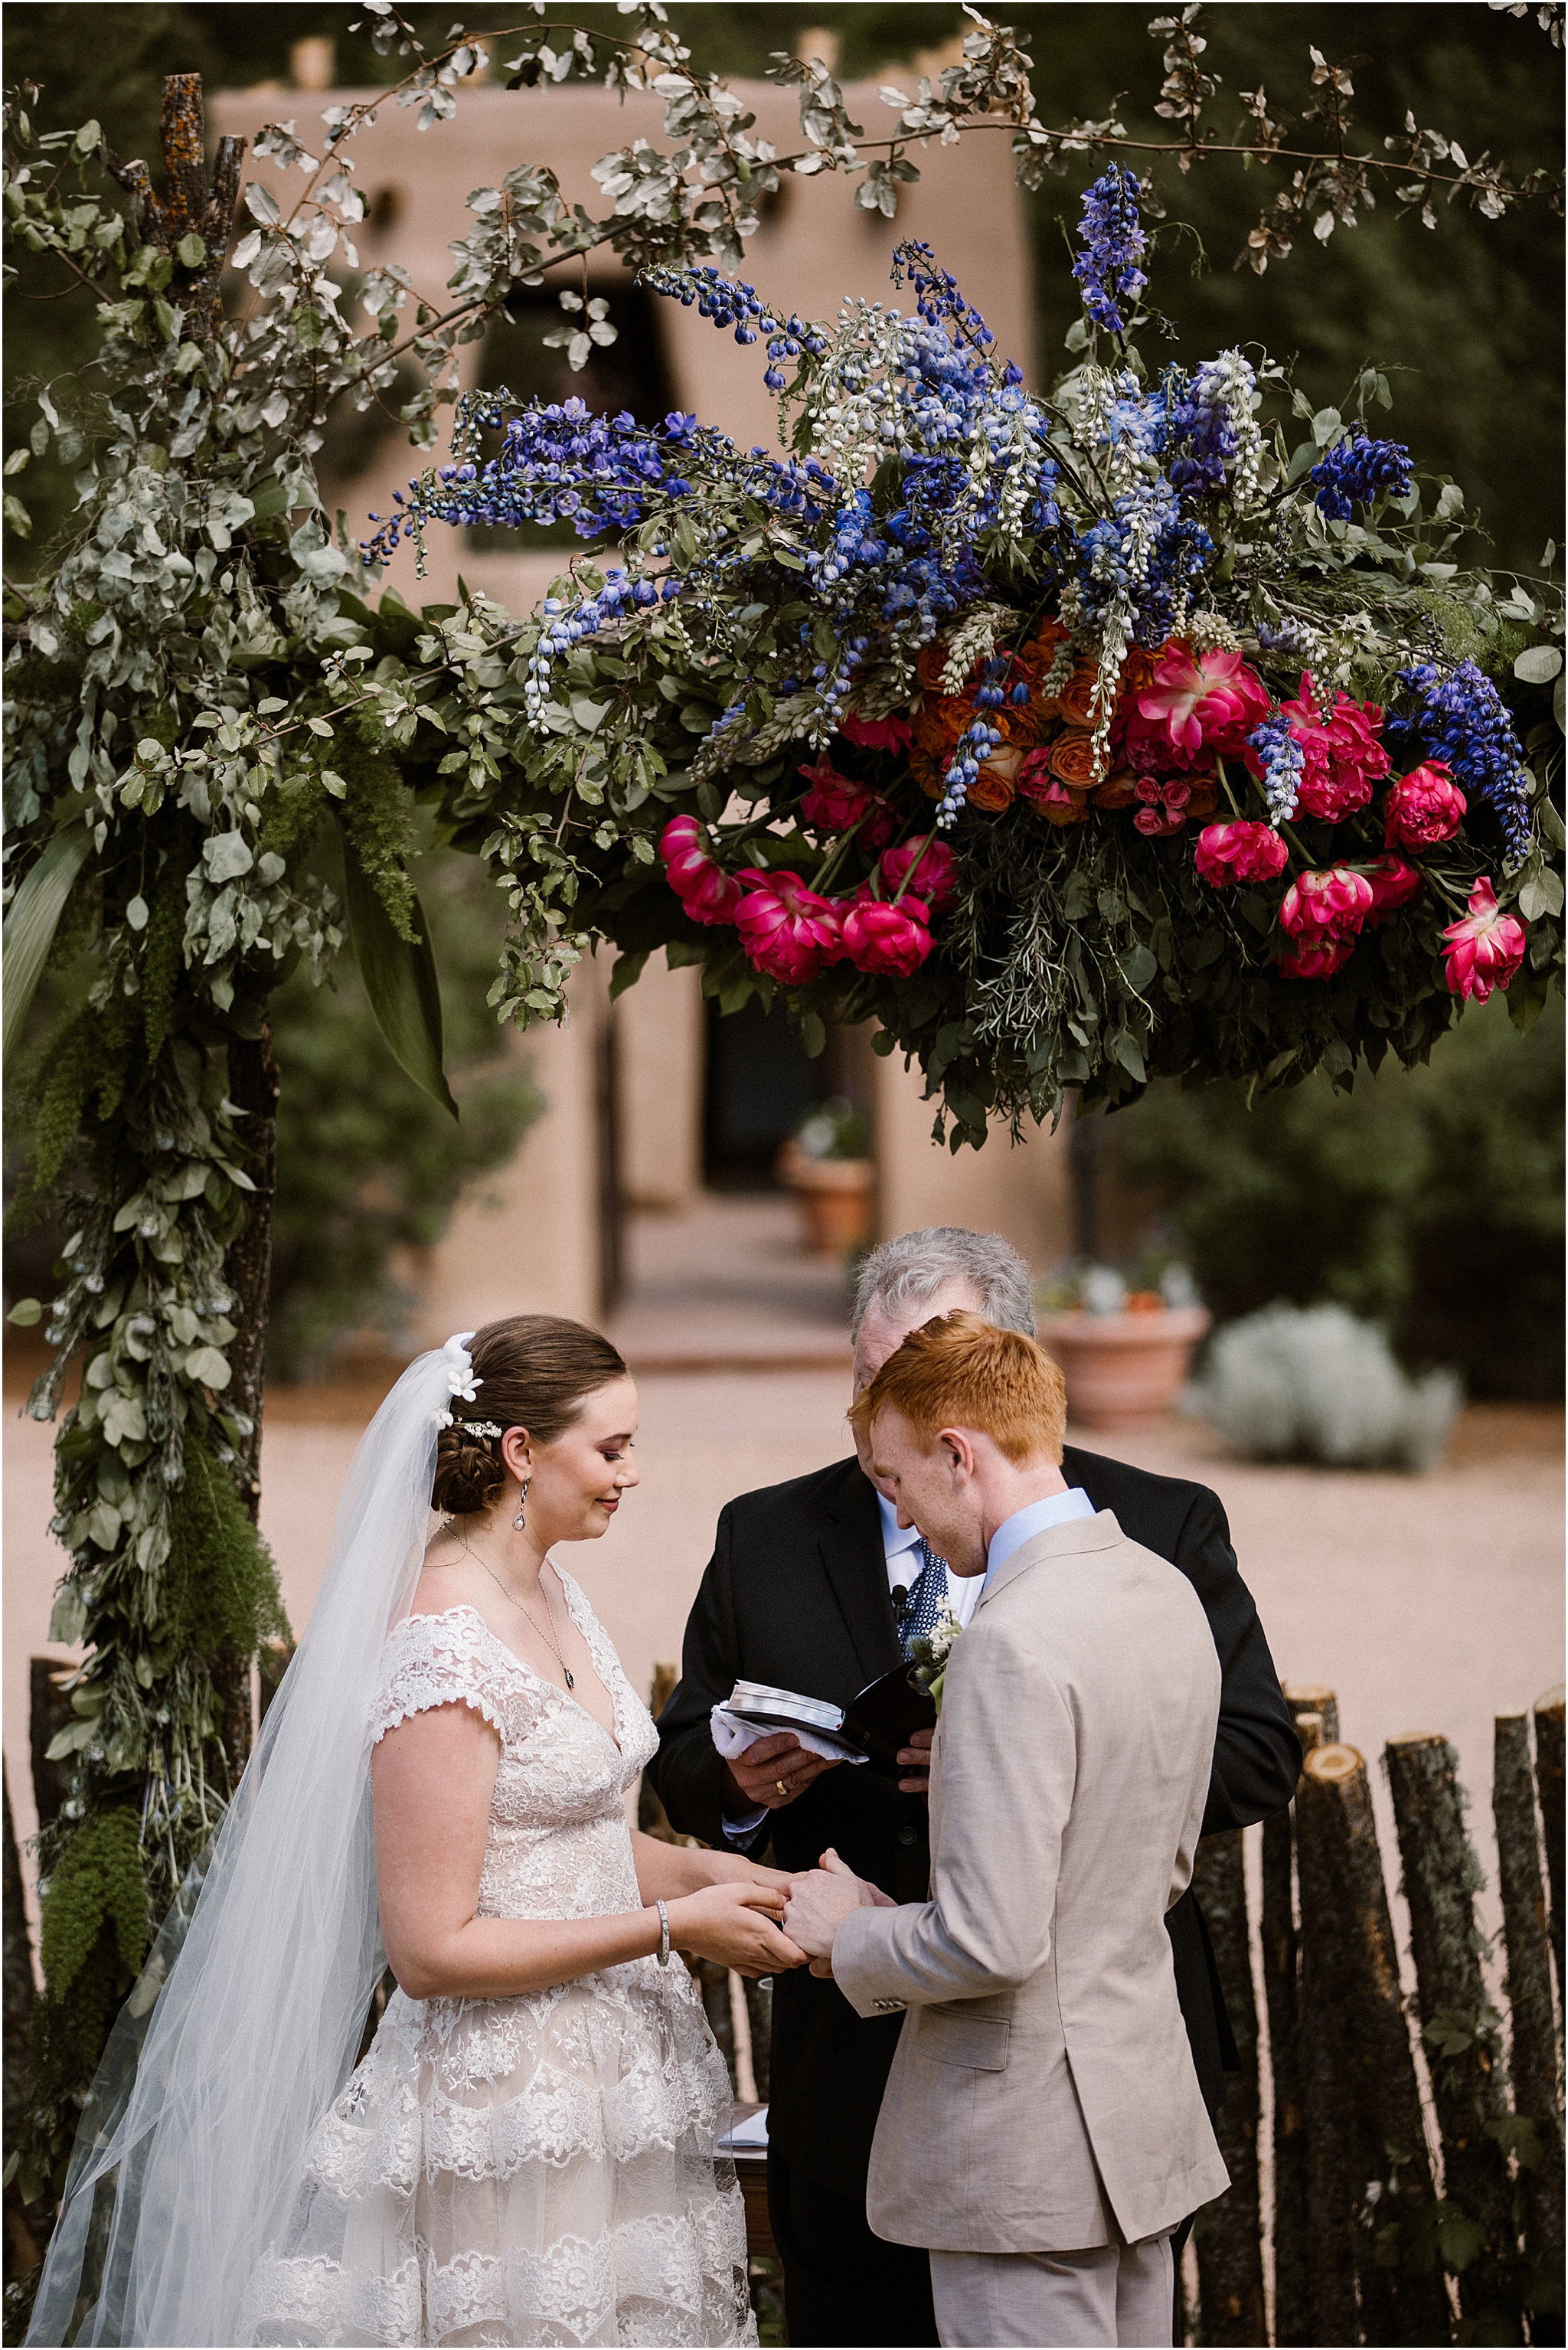 AMELIA_JASON_SANTA FE_ WEDDING_BLUE ROSE PHOTOGRAPHY64